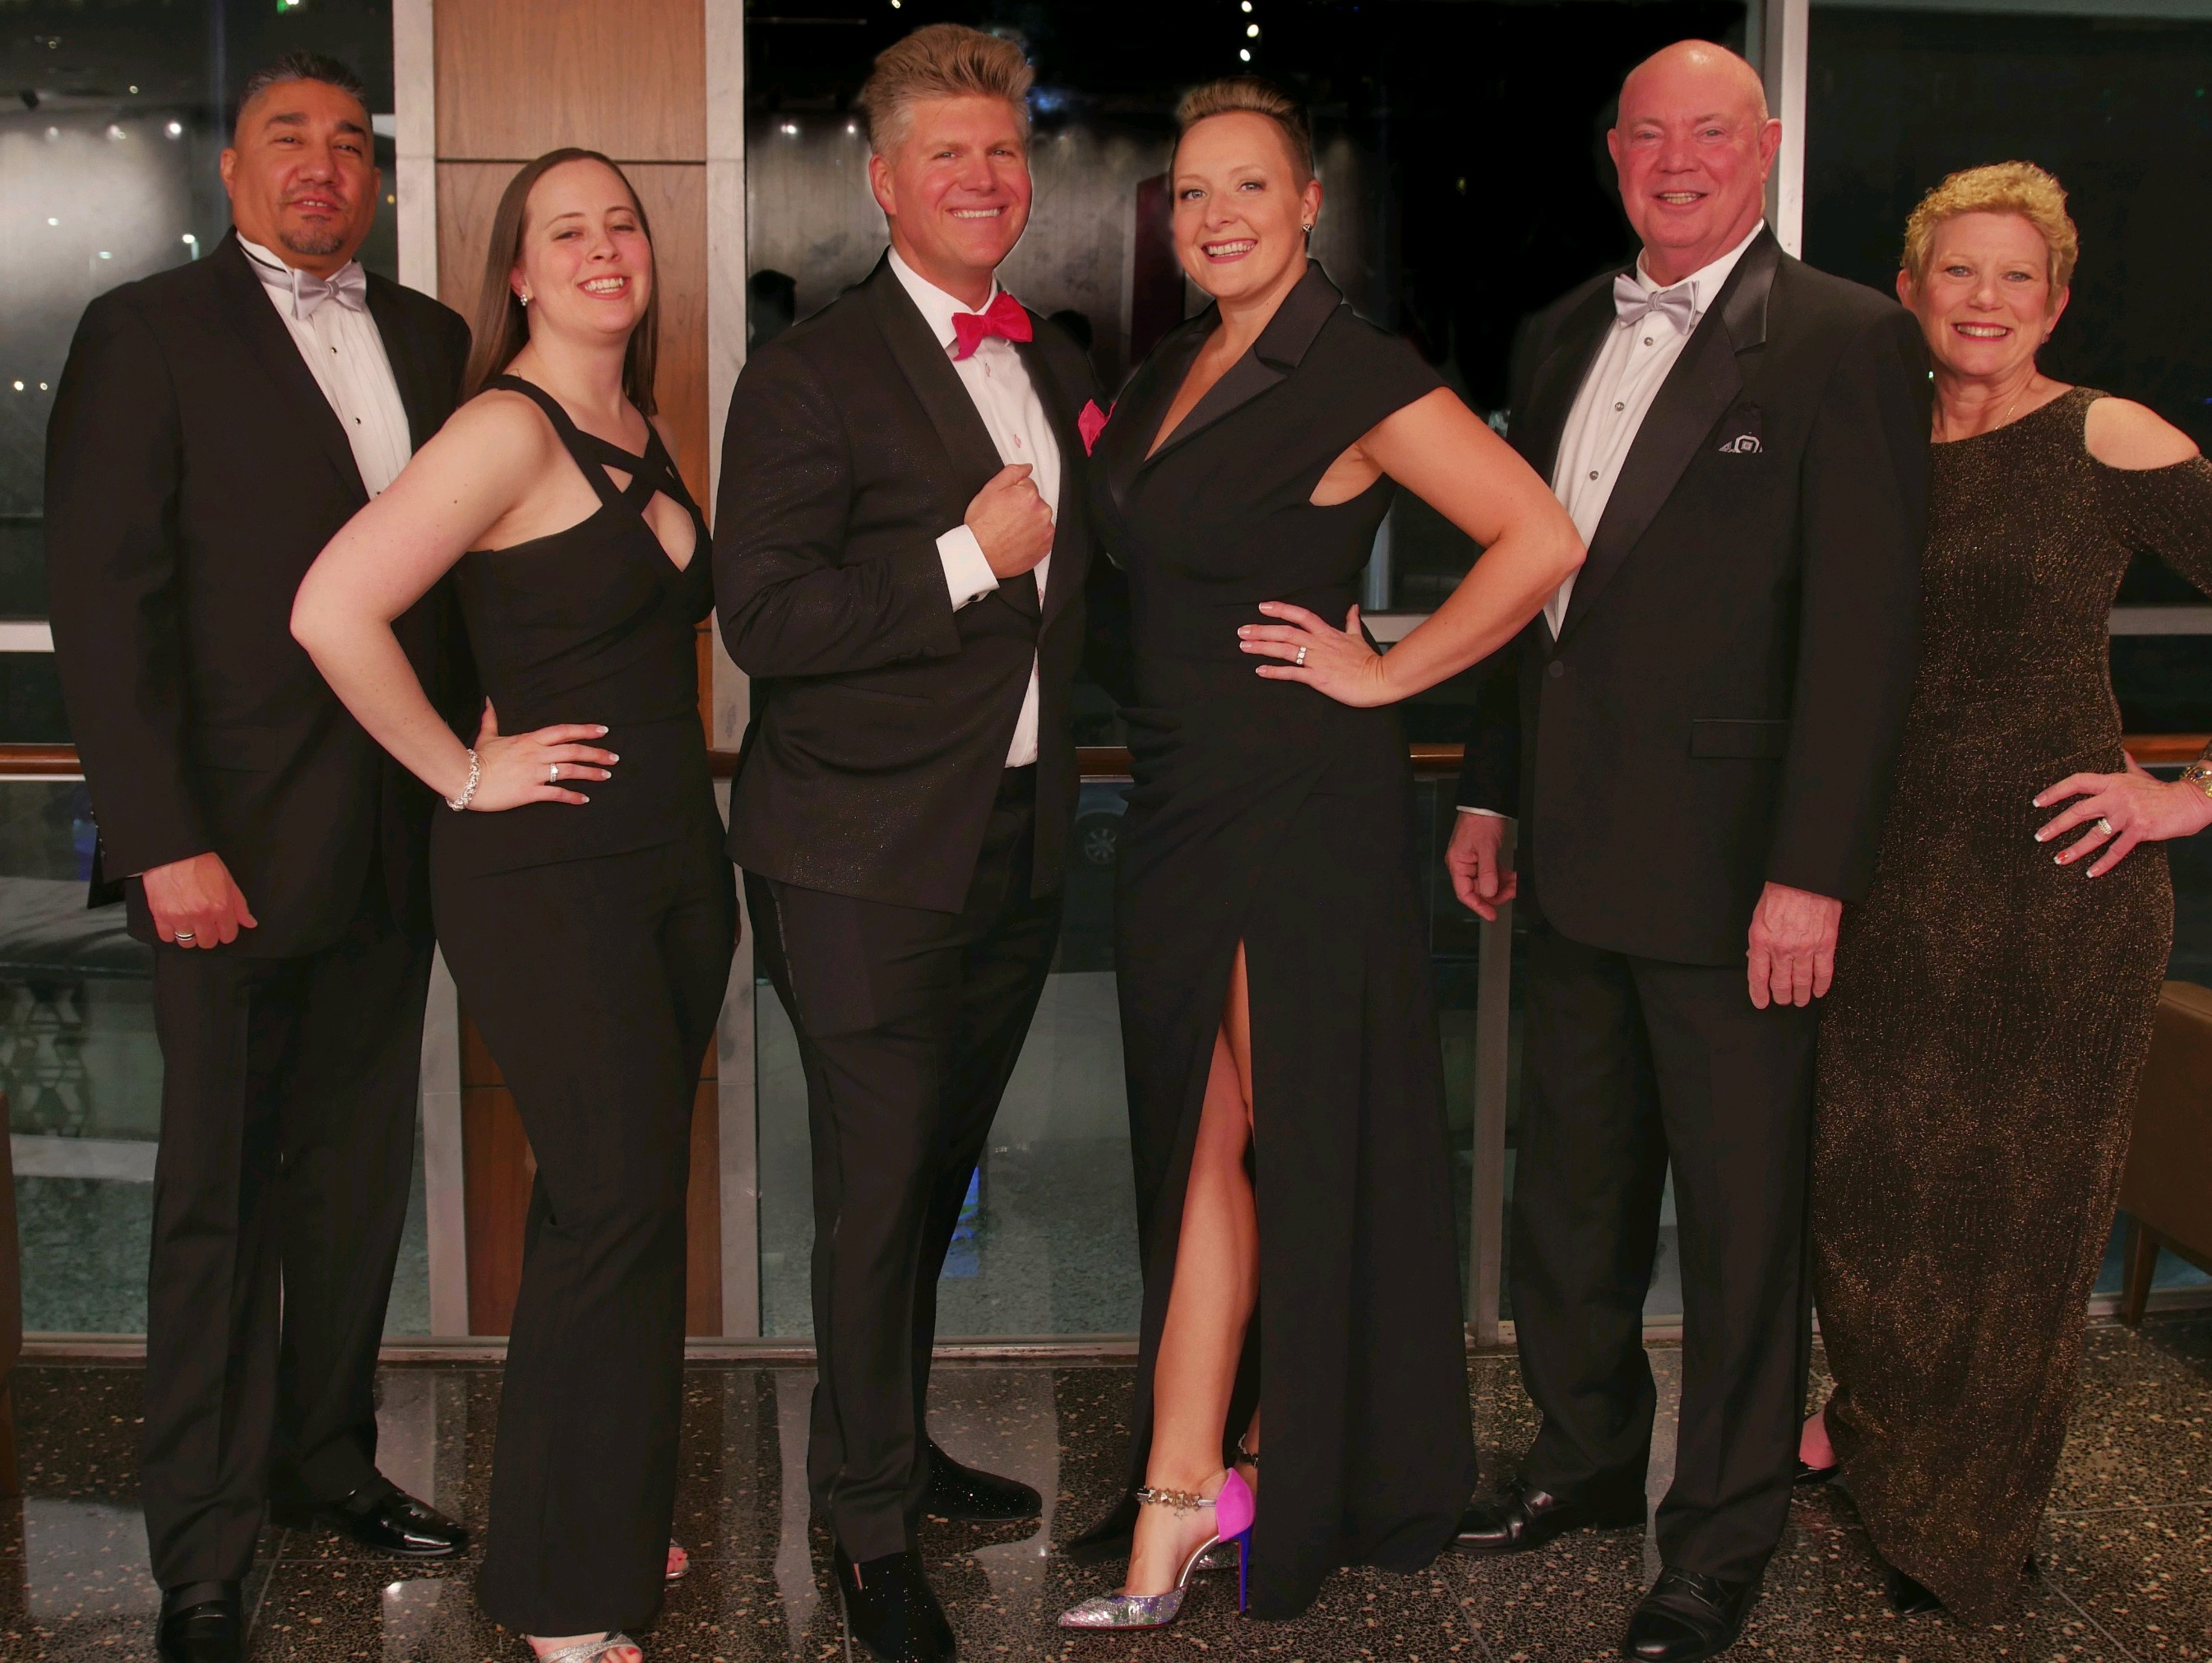 The team of auctioneers for the TCC gala